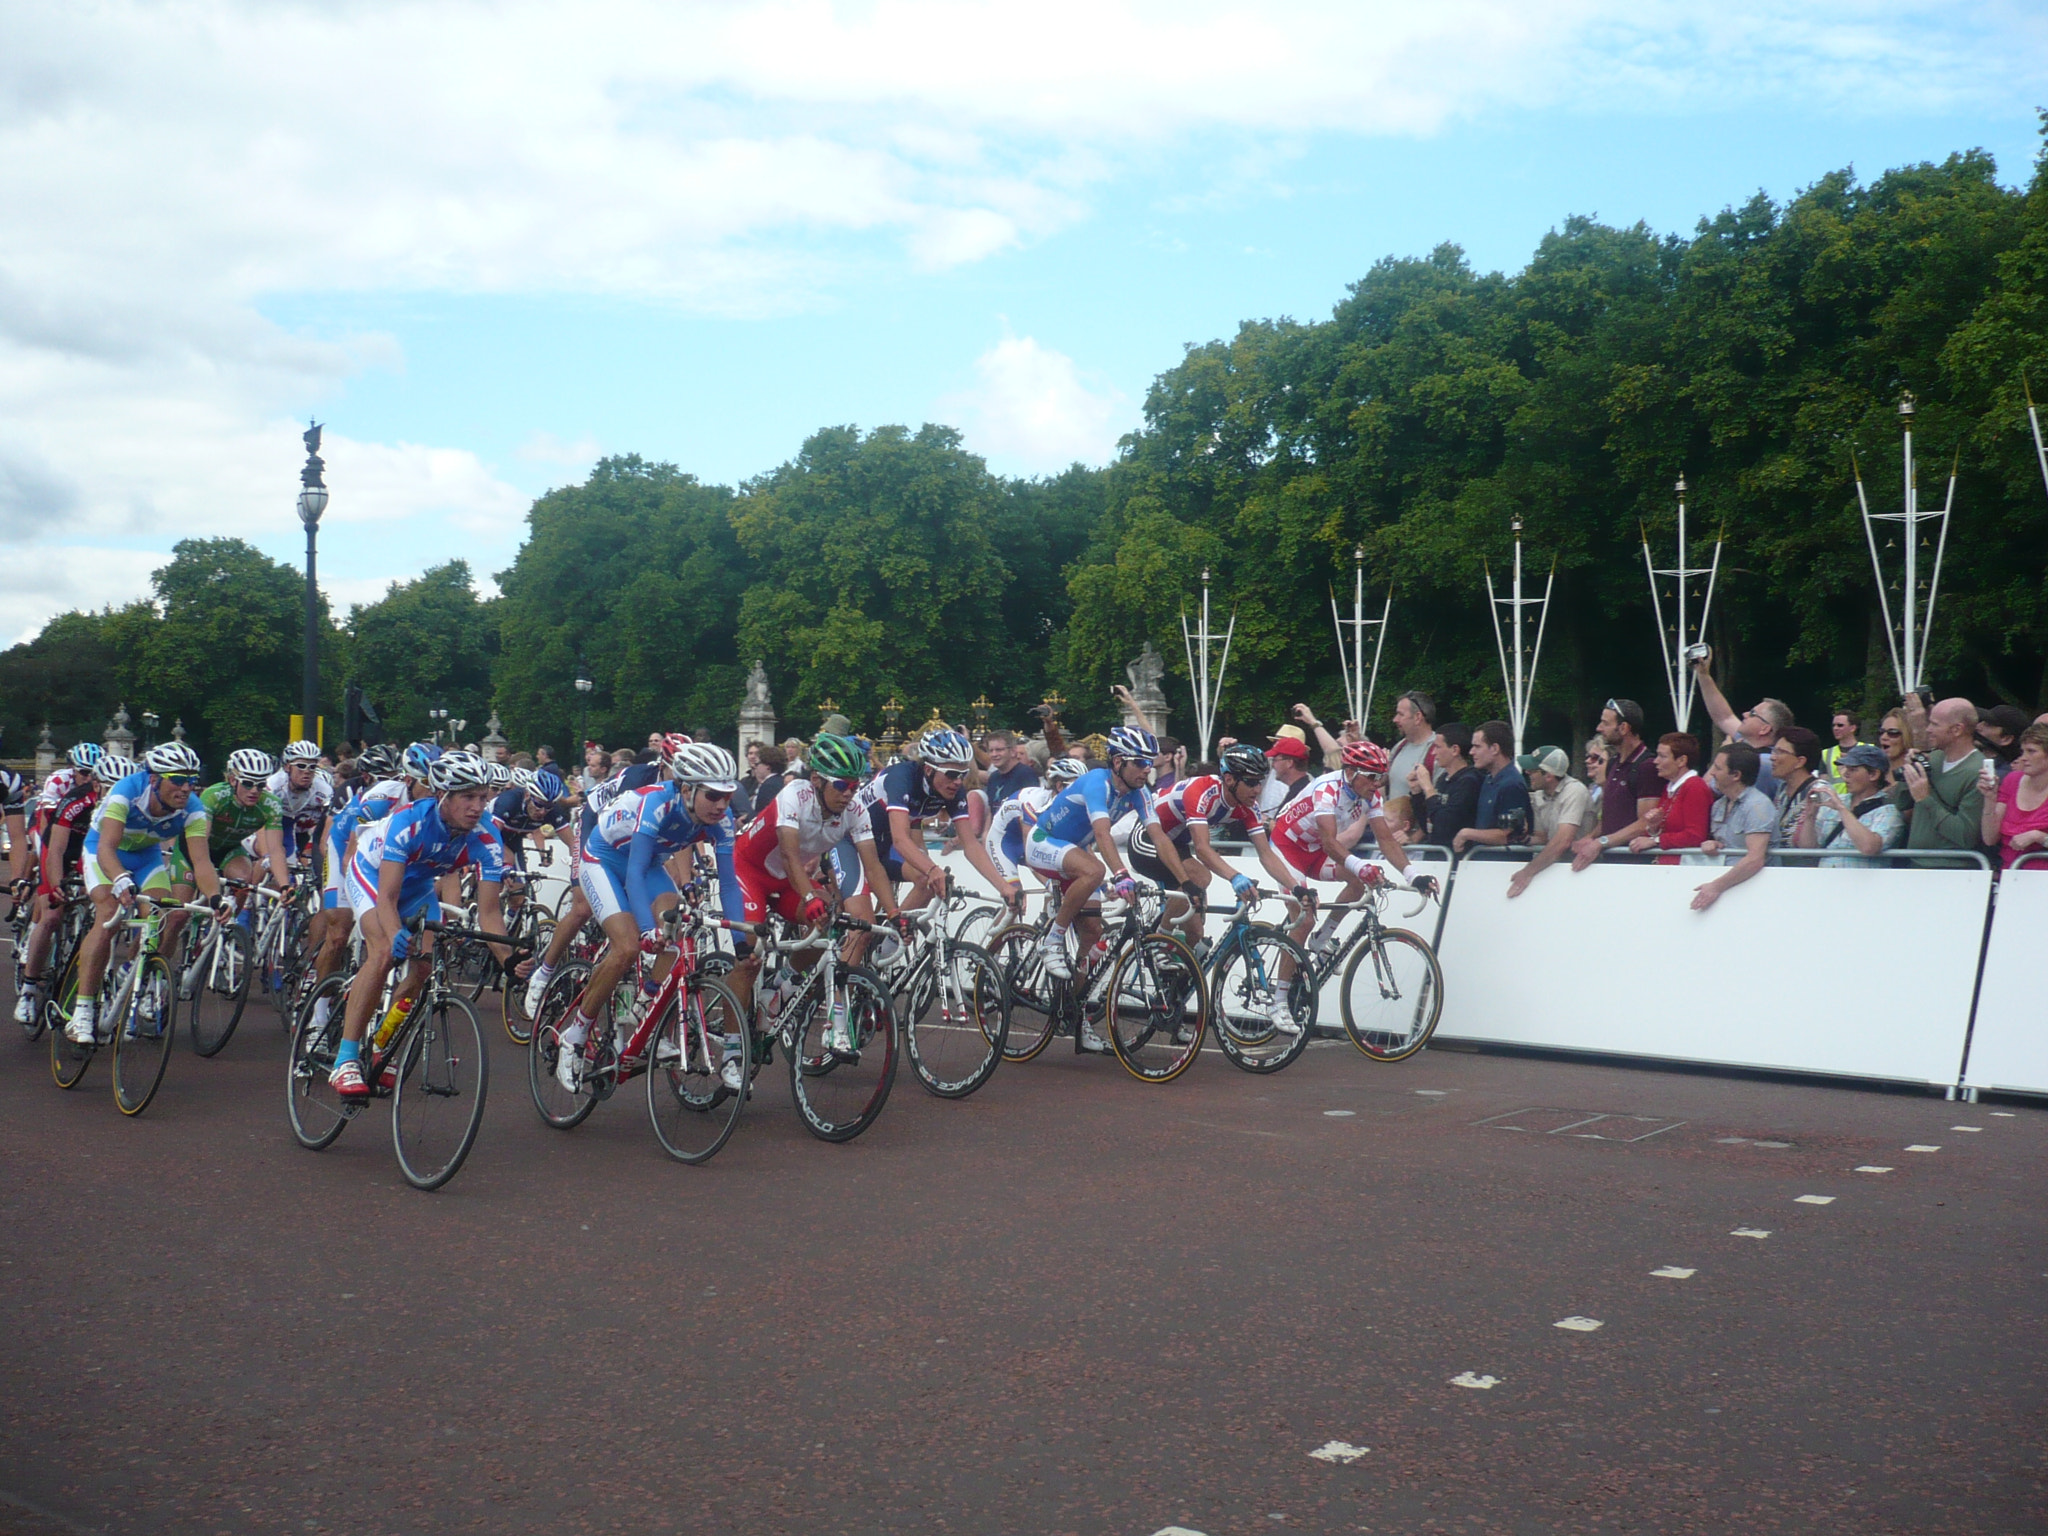 Photograph London Surrey Cycle Classic Peloton Finish by Robert Hayes on 500px